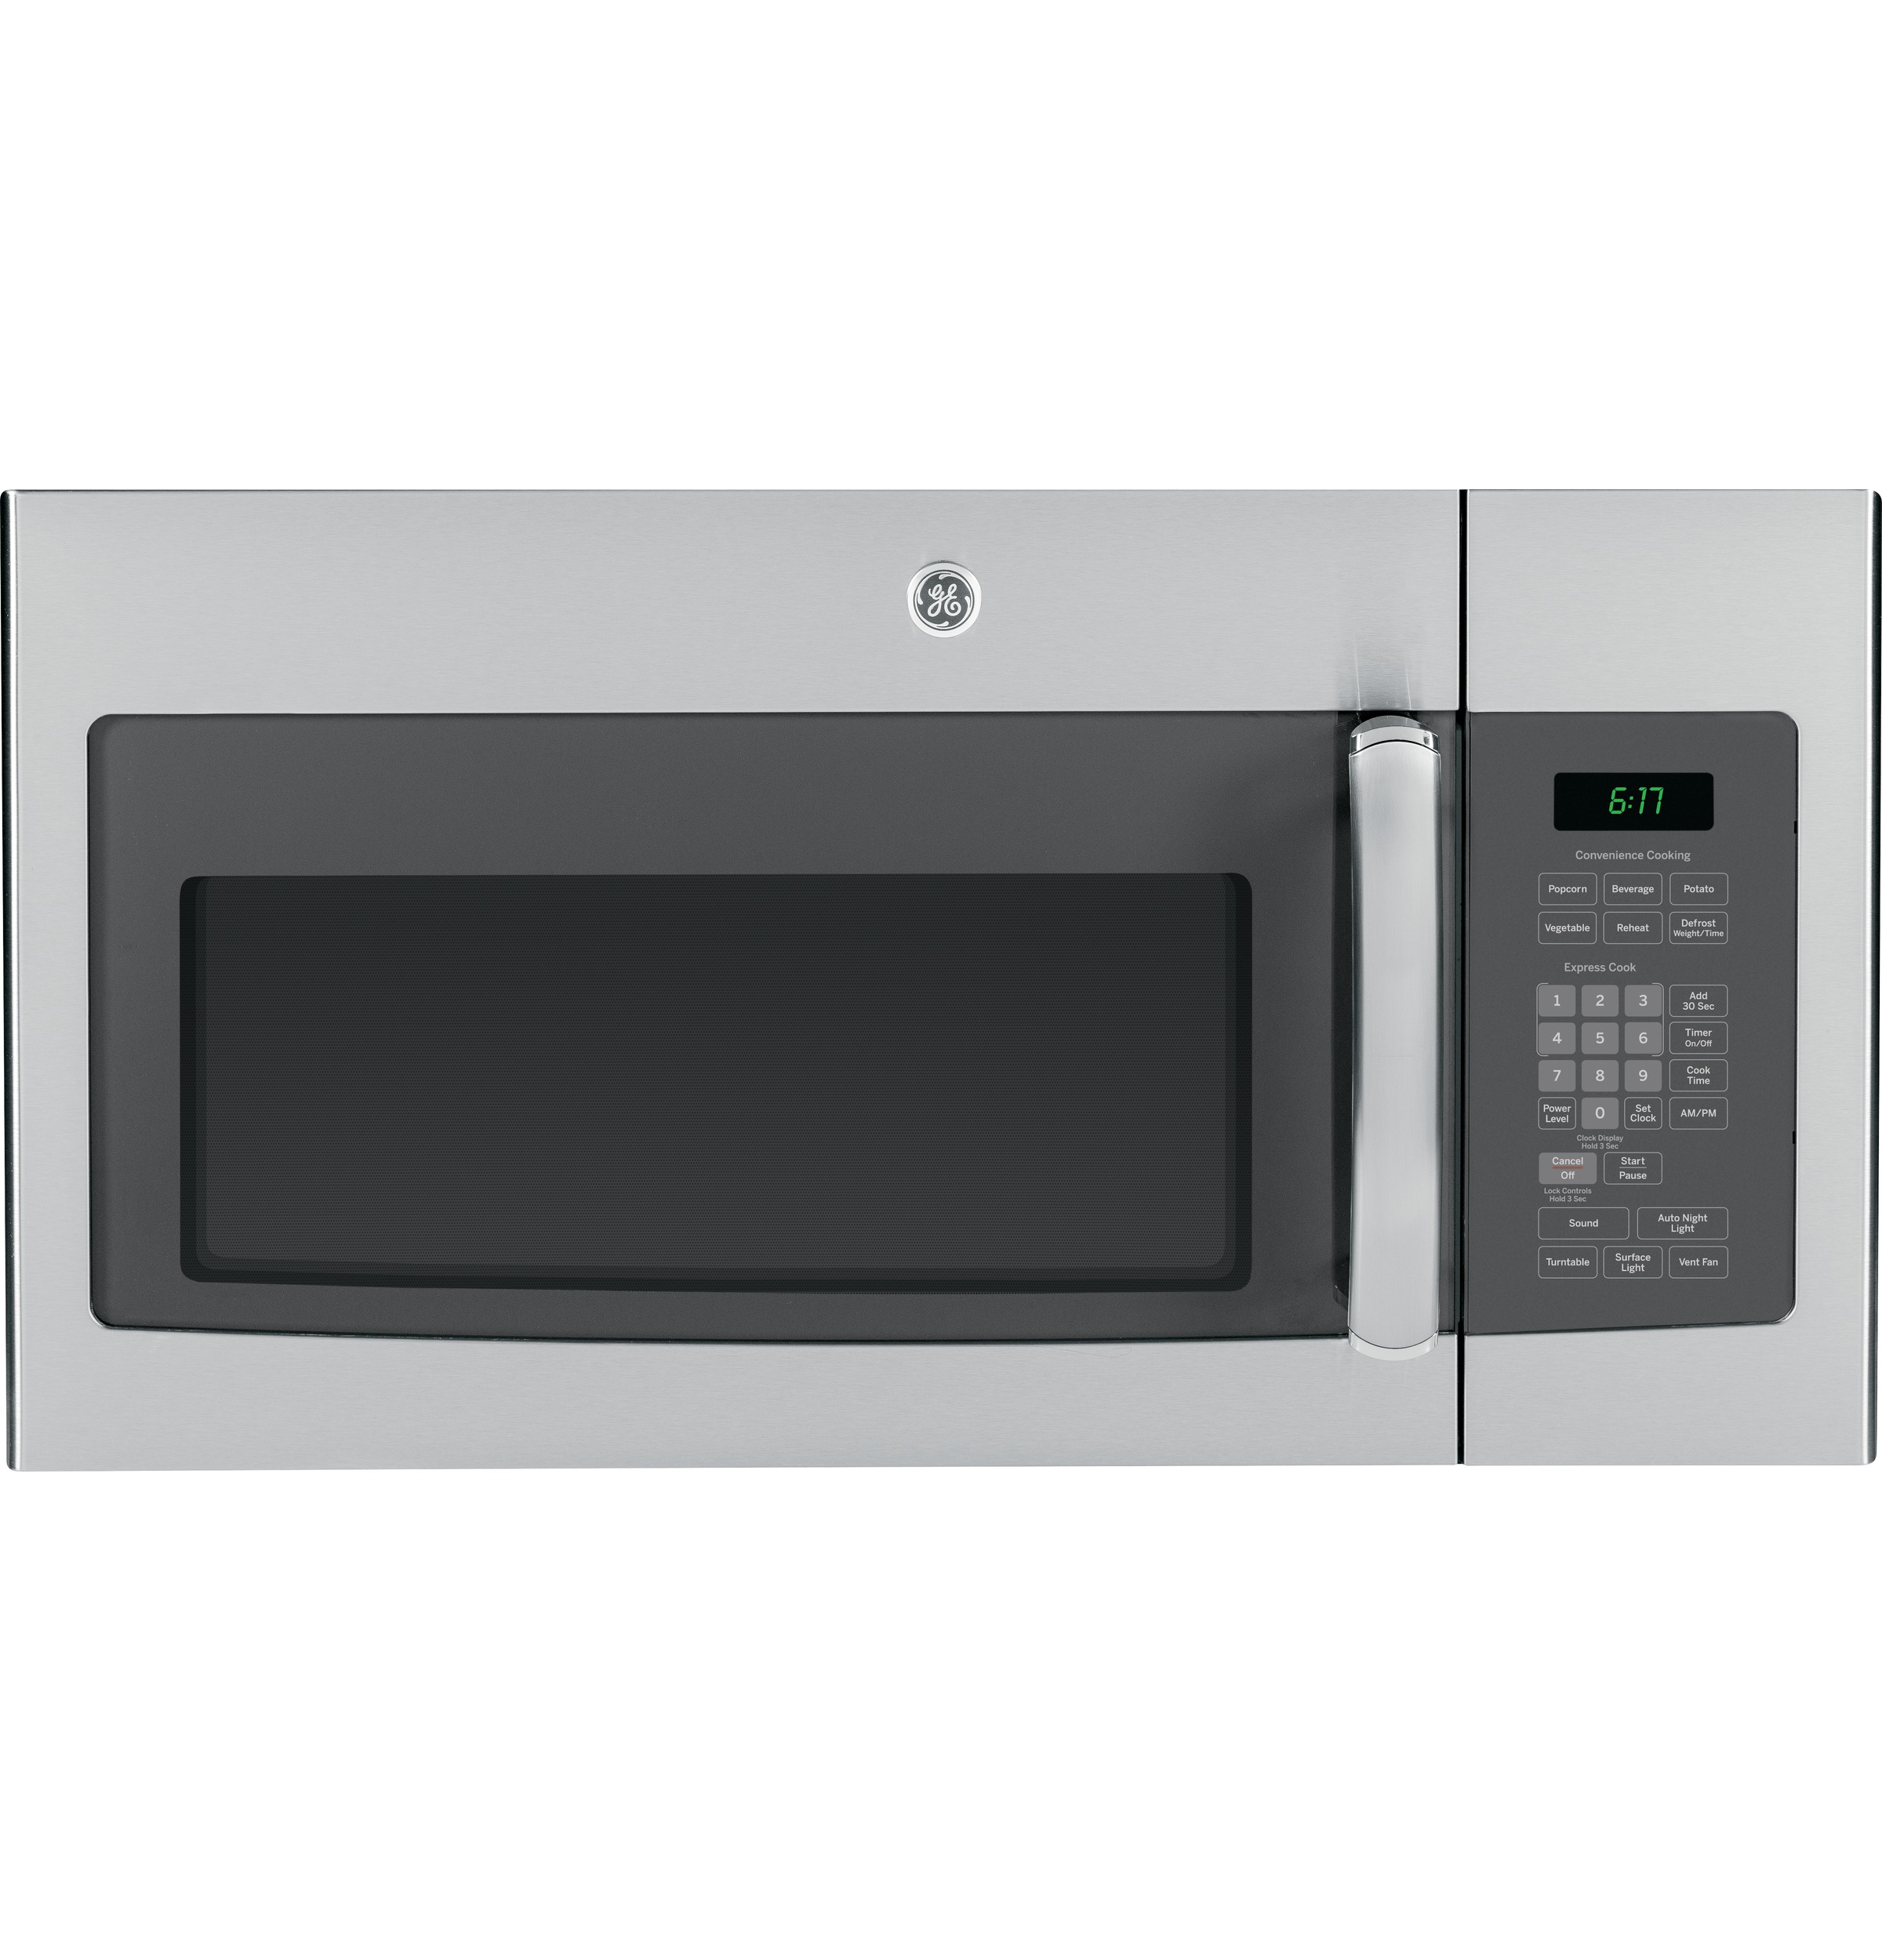 ge® series 1 7 cu ft over the range microwave oven jvm6172sfss product image